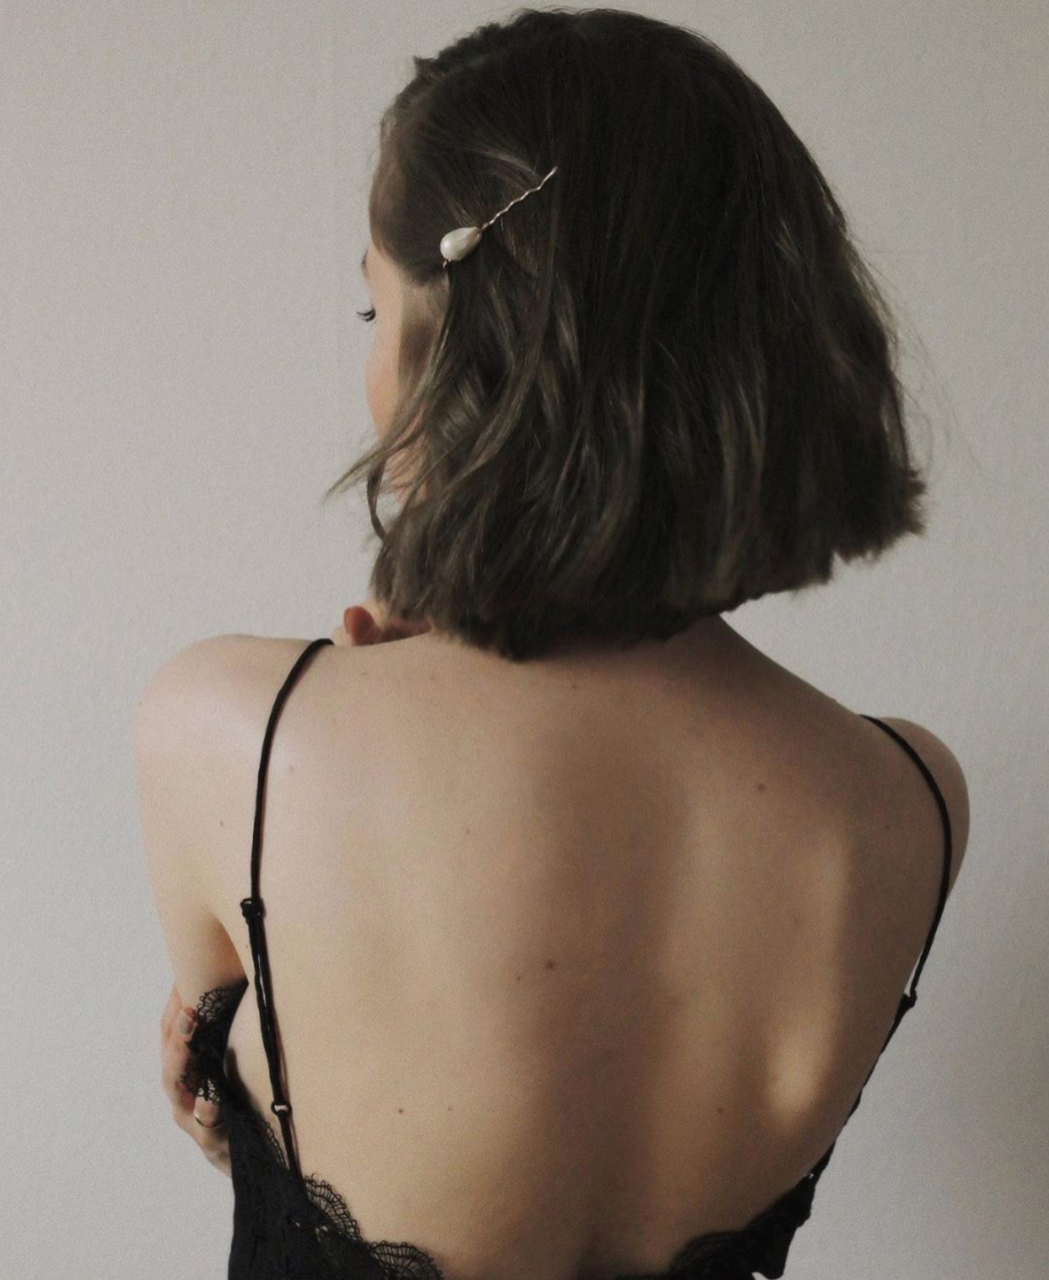 Image by tenderly